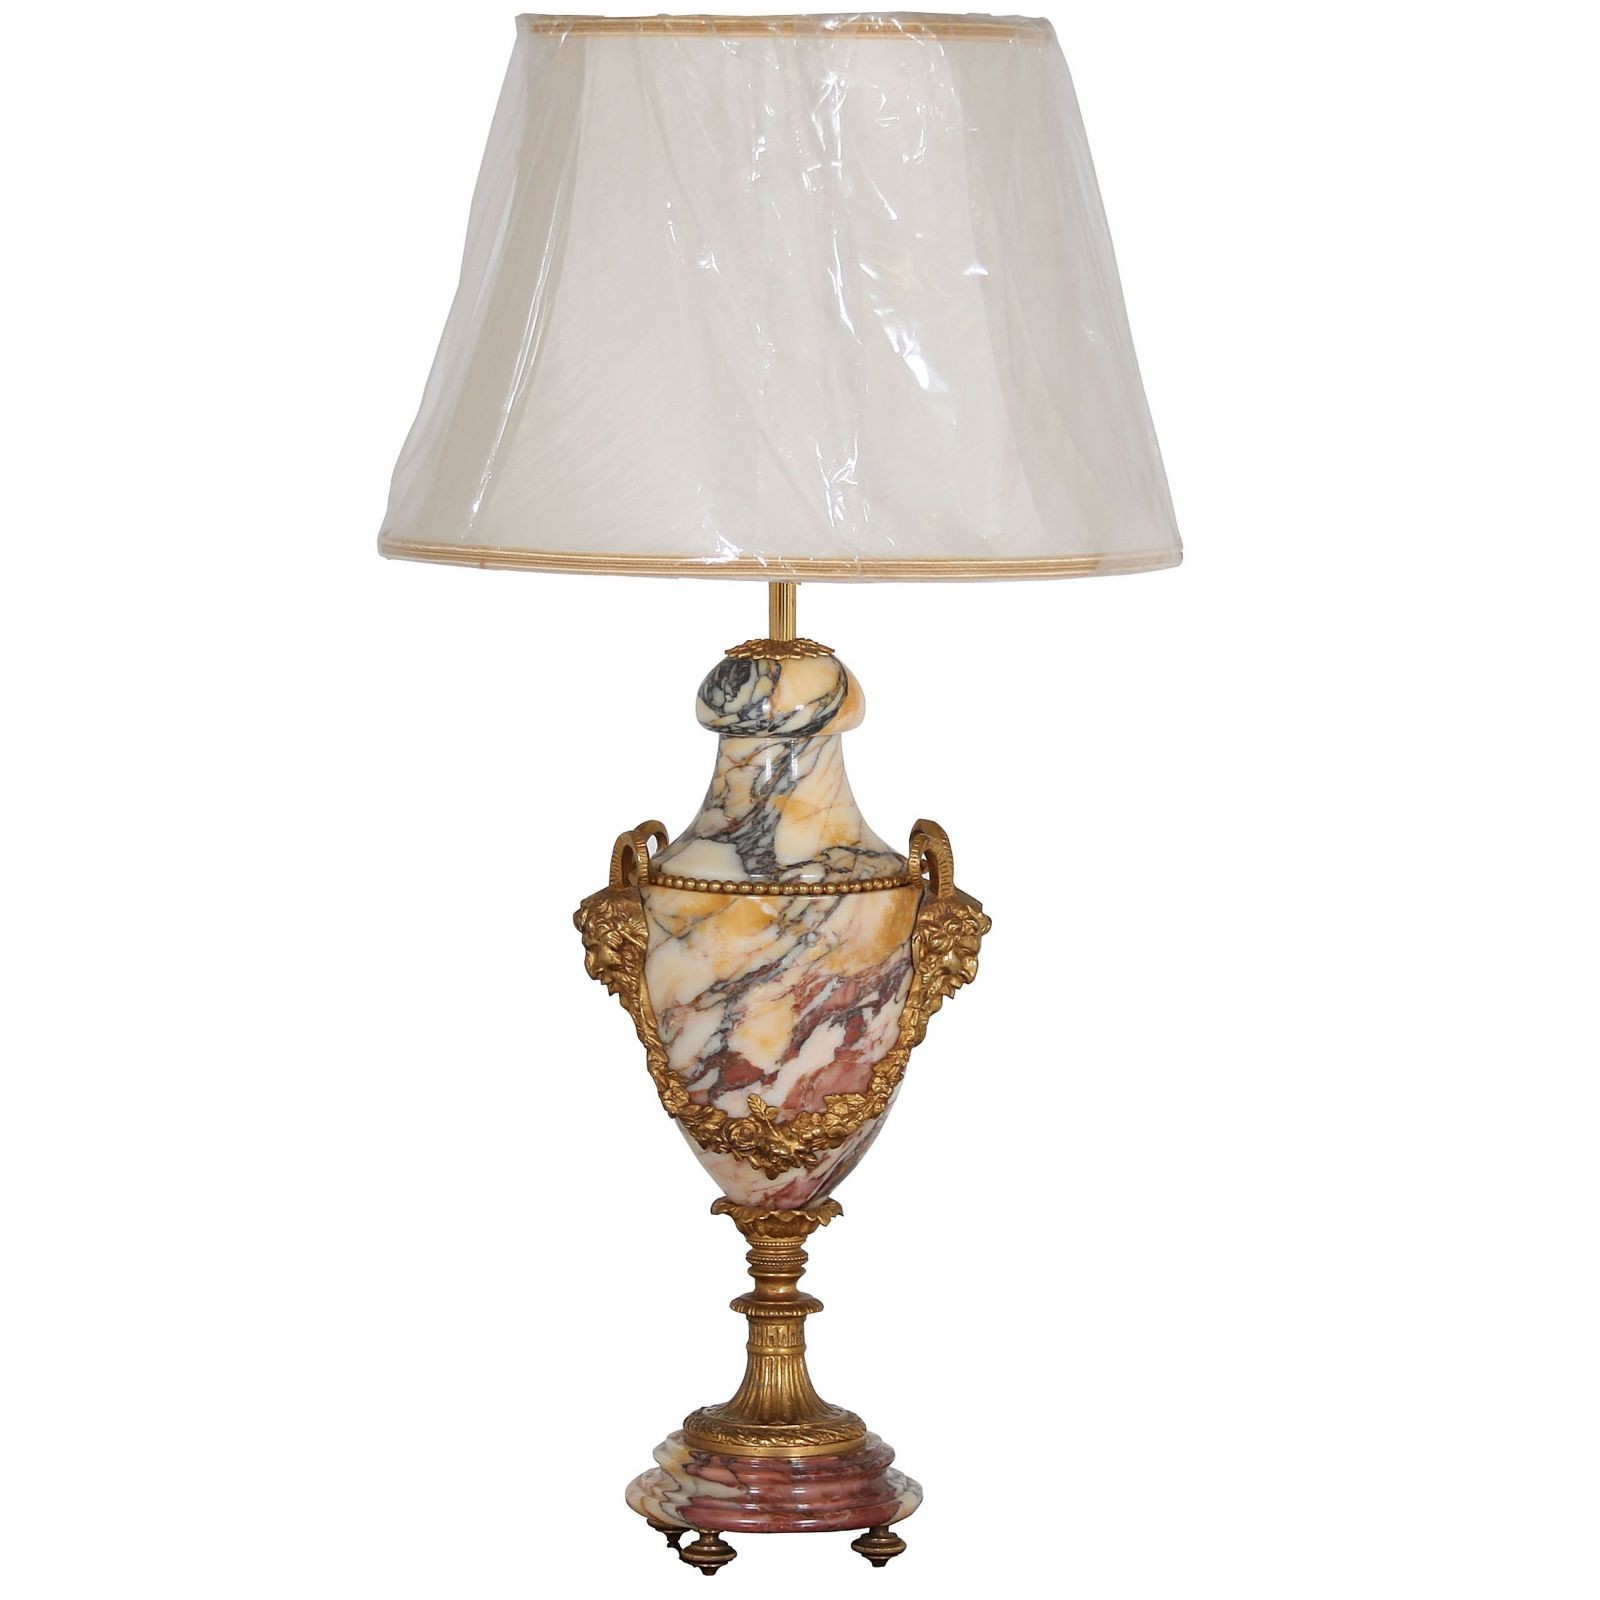 Marble table lamp with ormulu satyr